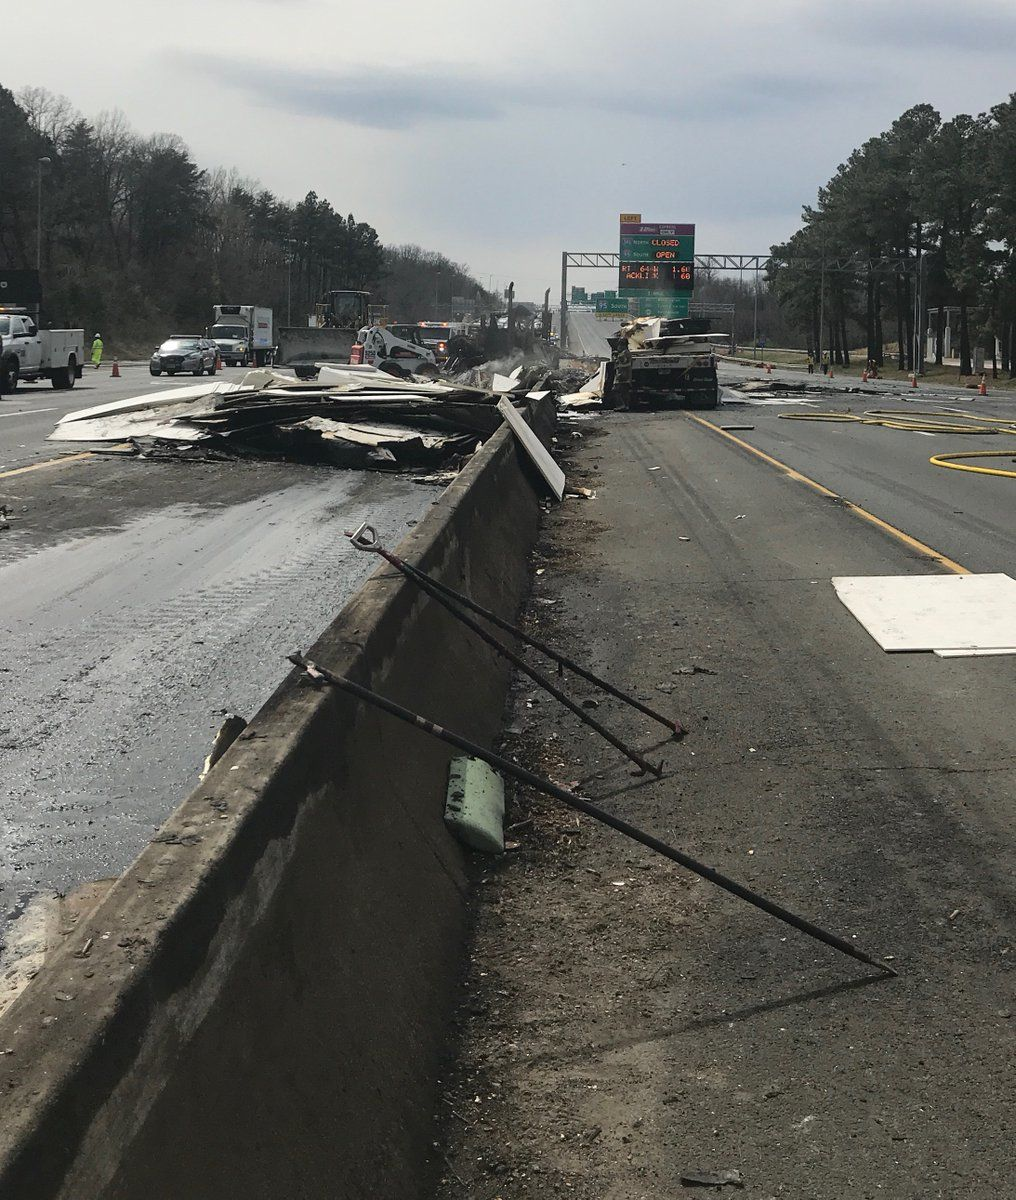 The cleanup was underway after Thursday's crash and fire on the Beltway. (Courtesy Fairfax Fire and Rescue)